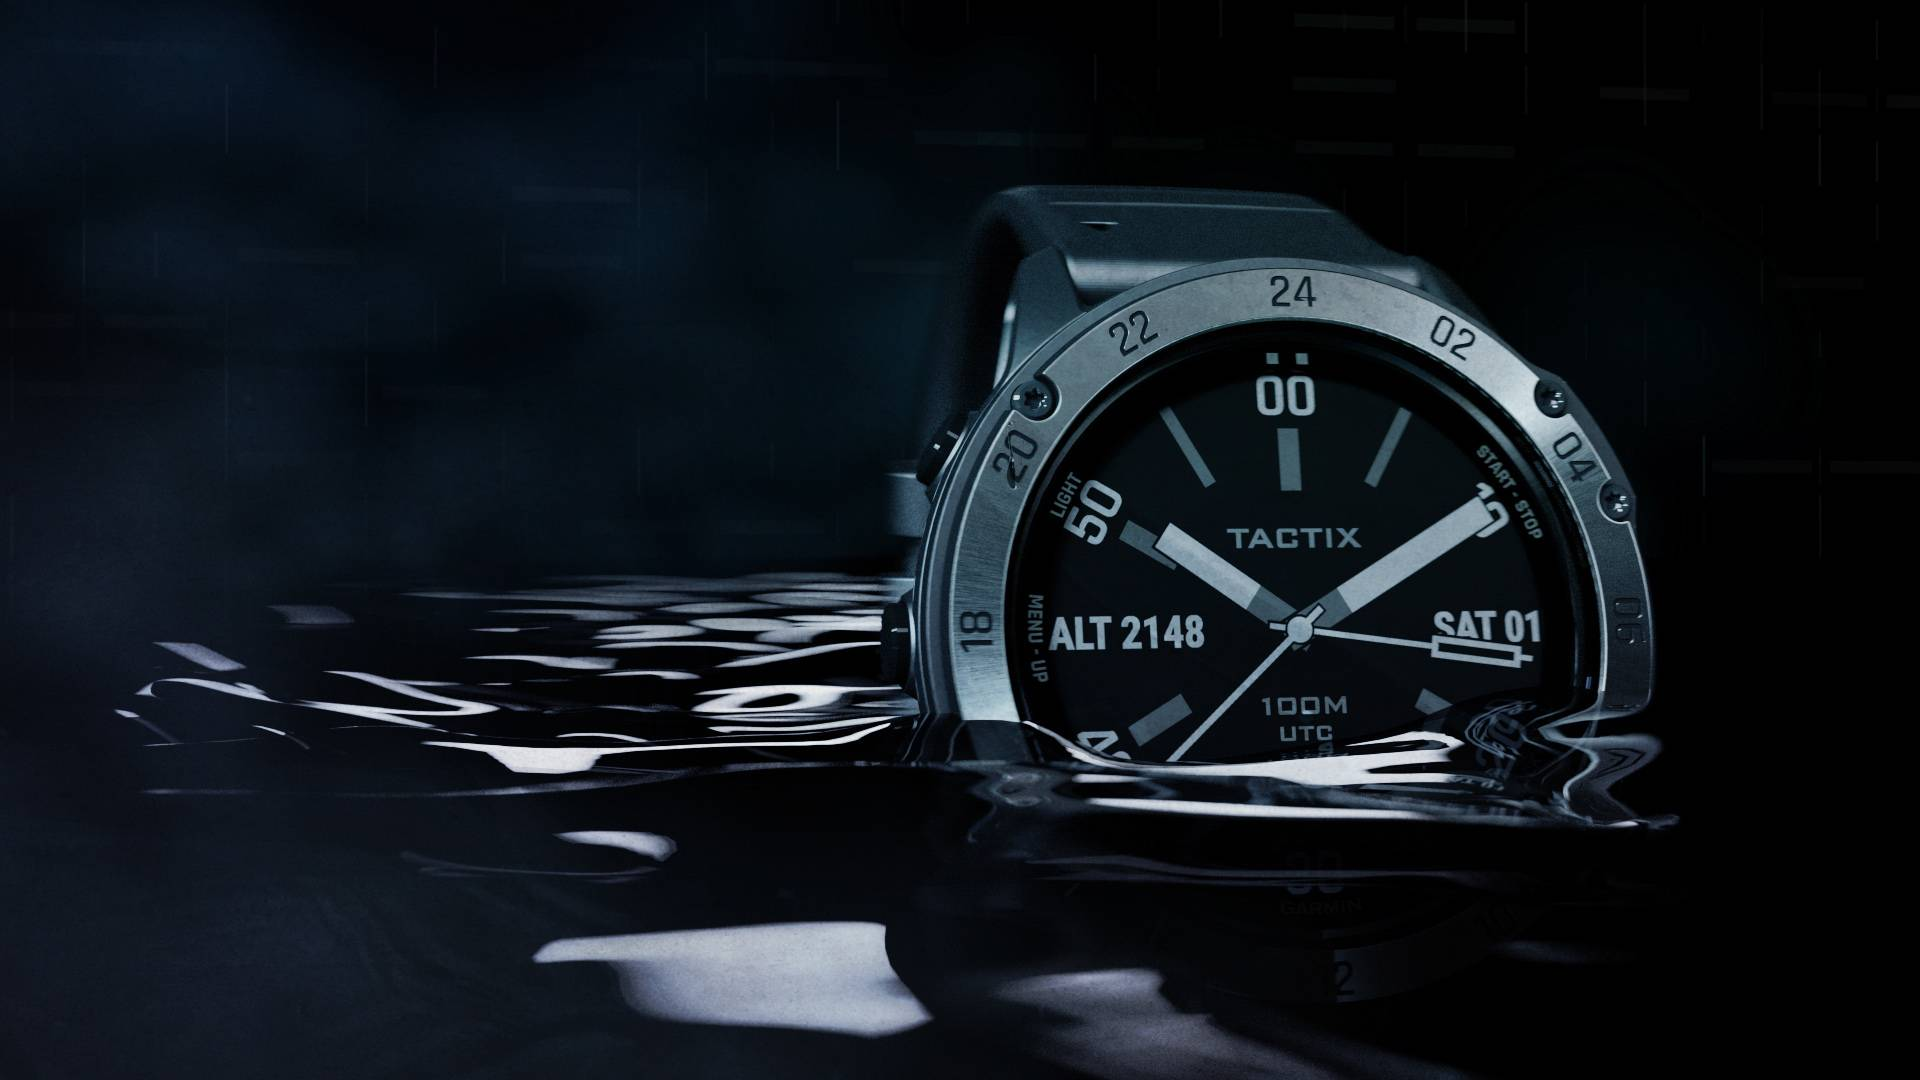 Garmin tactix Delta A US$899 Garmin Fit For A Soldier